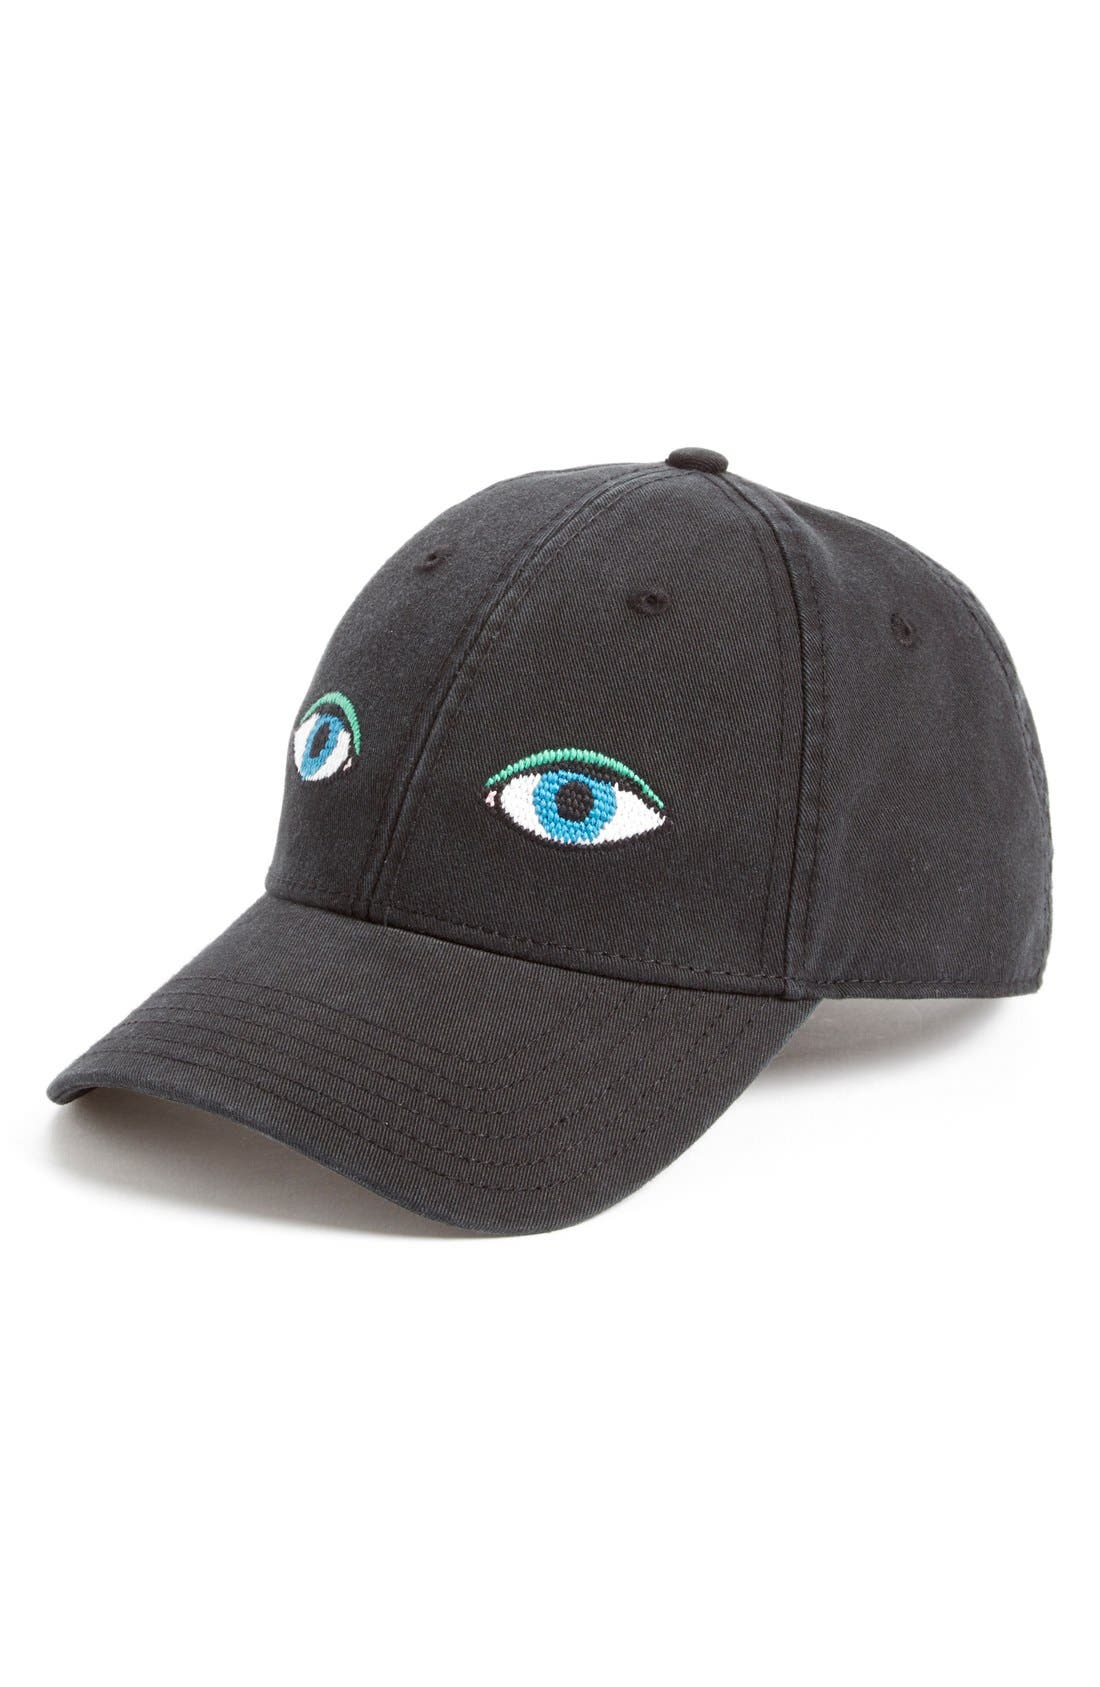 Alternate Image 1 Selected - Opening Ceremony 'Eye' Cap